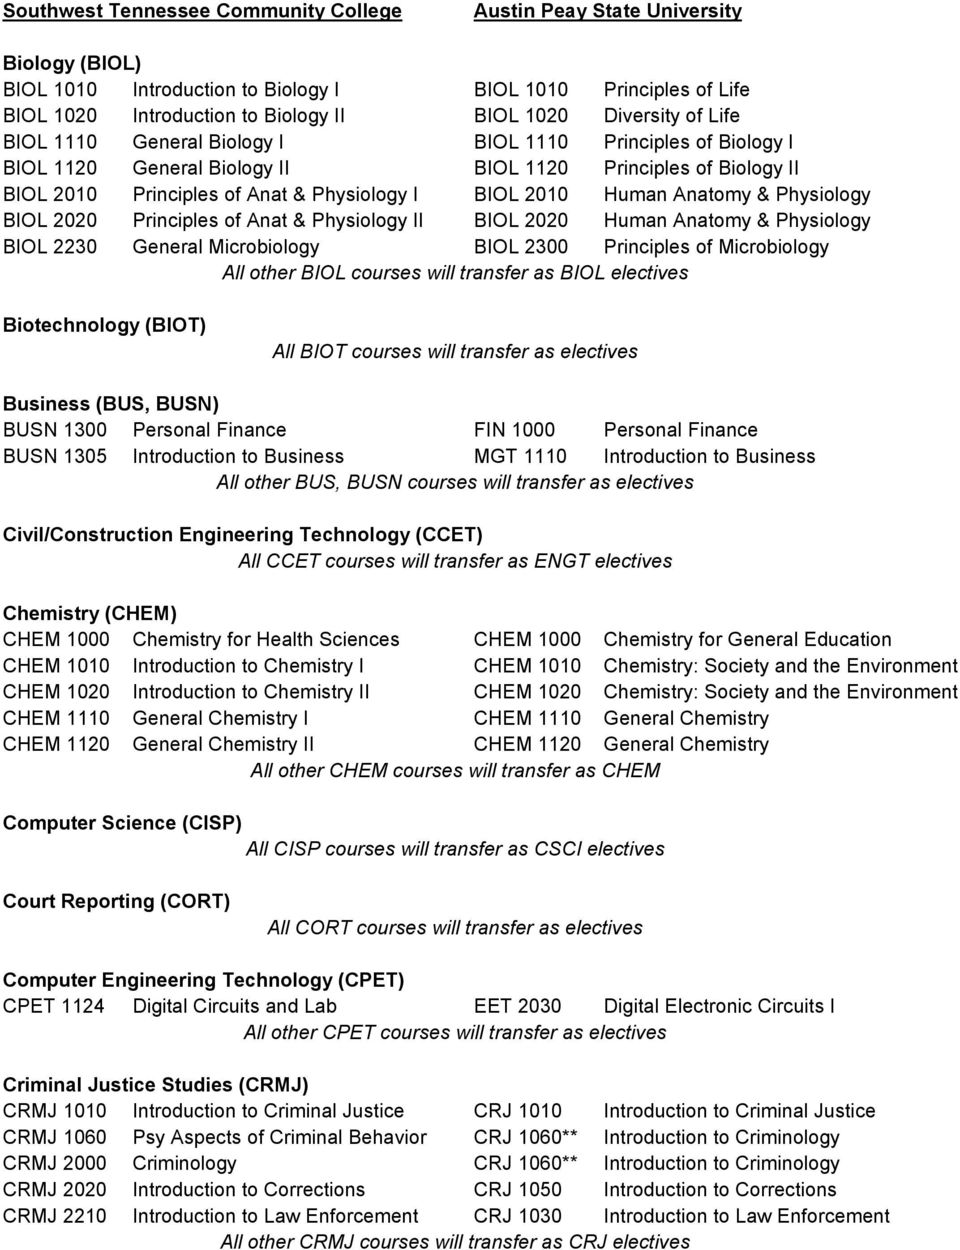 BIOL 2020 Human Anatomy & Physiology BIOL 2230 General Microbiology BIOL 2300 Principles of Microbiology All other BIOL courses will transfer as BIOL electives Biotechnology (BIOT) All BIOT courses